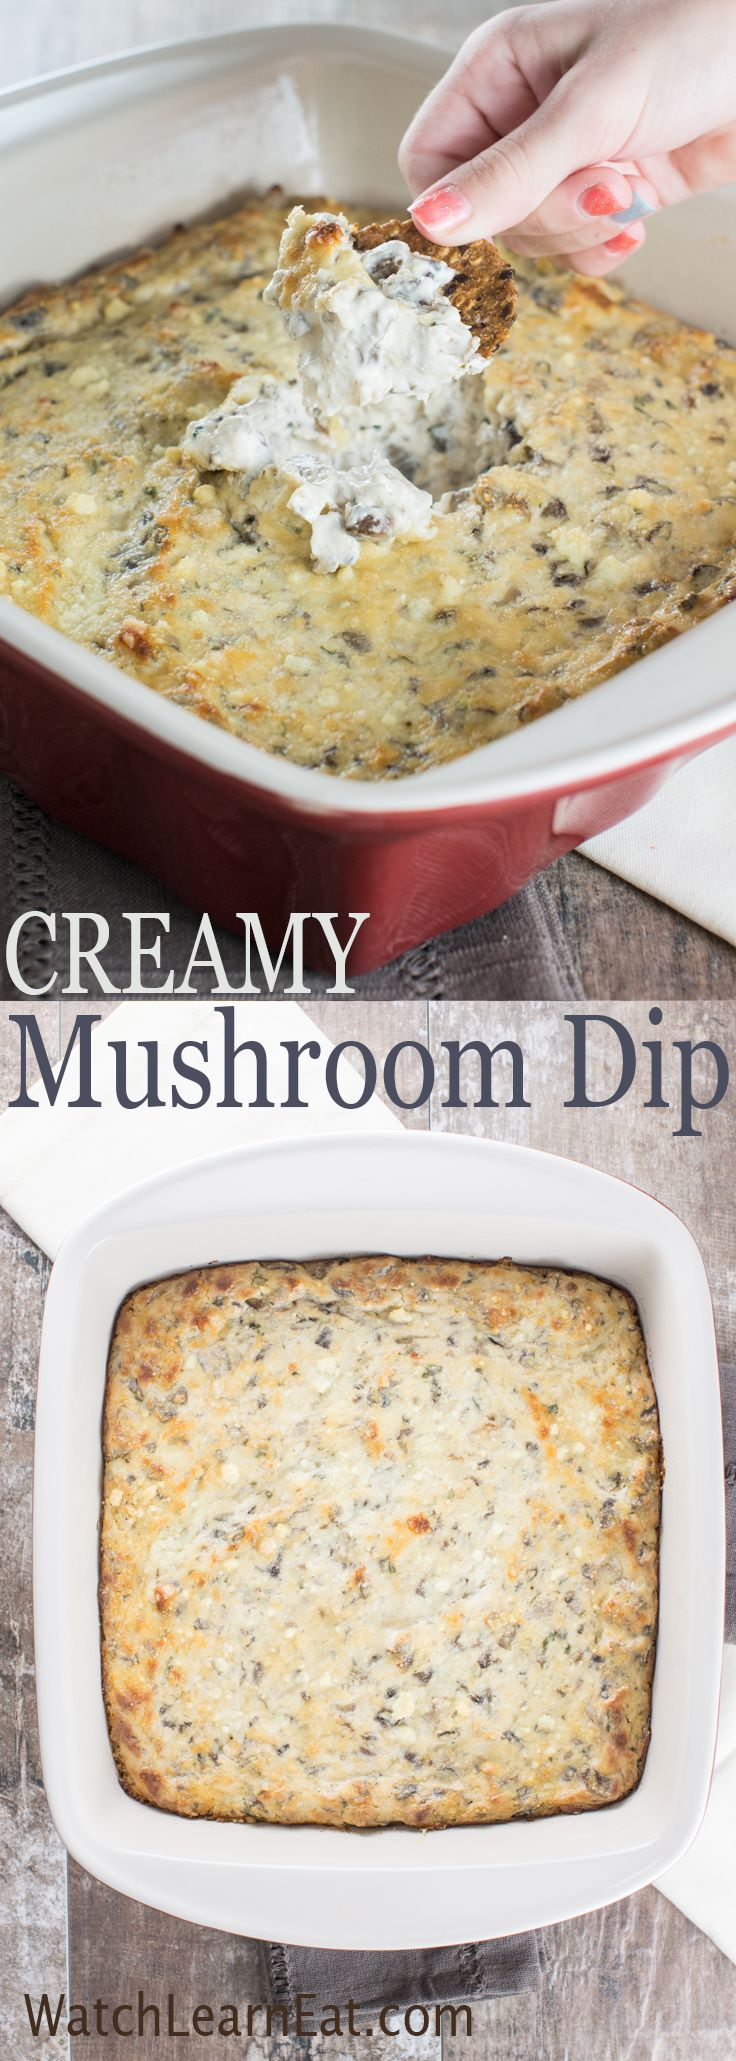 This Creamy Mushroom Dip combines two kinds of mushrooms and a blend of Italian grated cheeses to create a warm appetizer your guests will love.